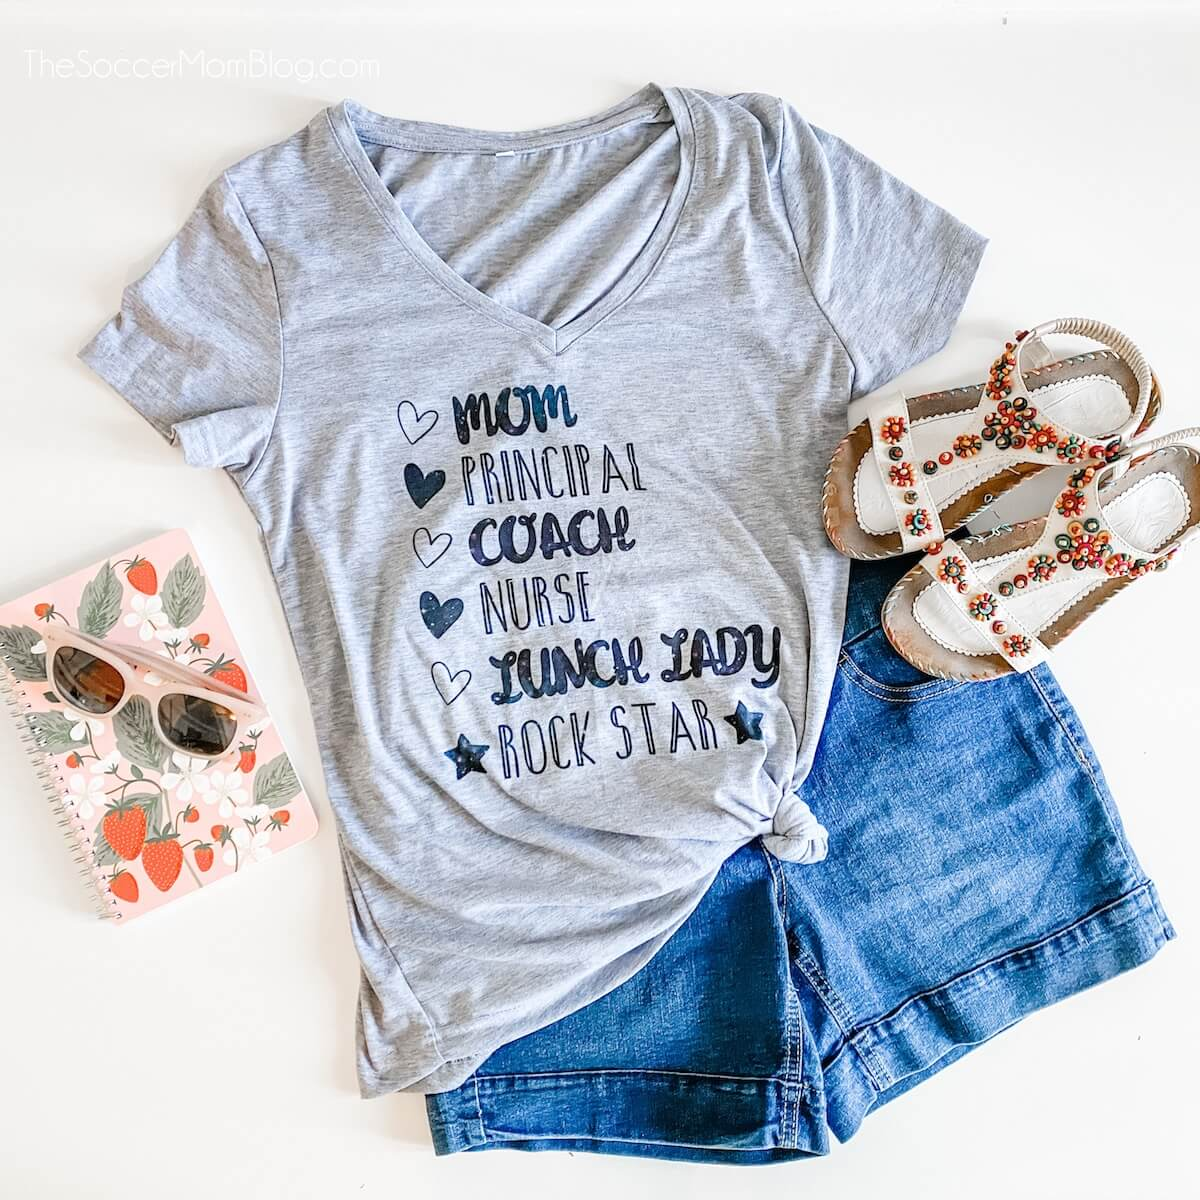 rockstar homeschool mom t-shirt made with Cricut